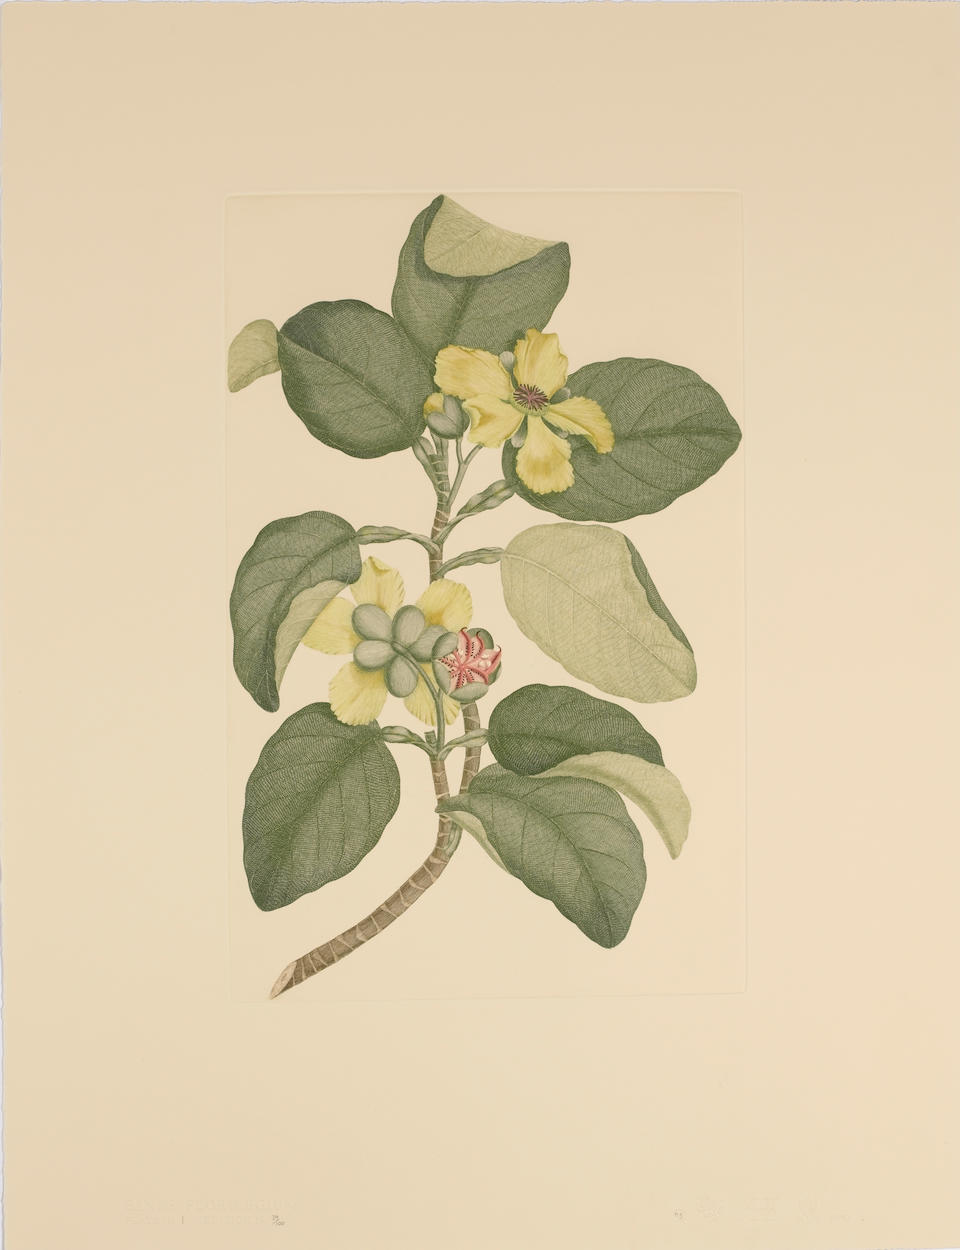 BANKS (JOSEPH) Banks' Florilegium. A Publication in Thirty-Four Parts of Seven Hundred and Thirty-Ei